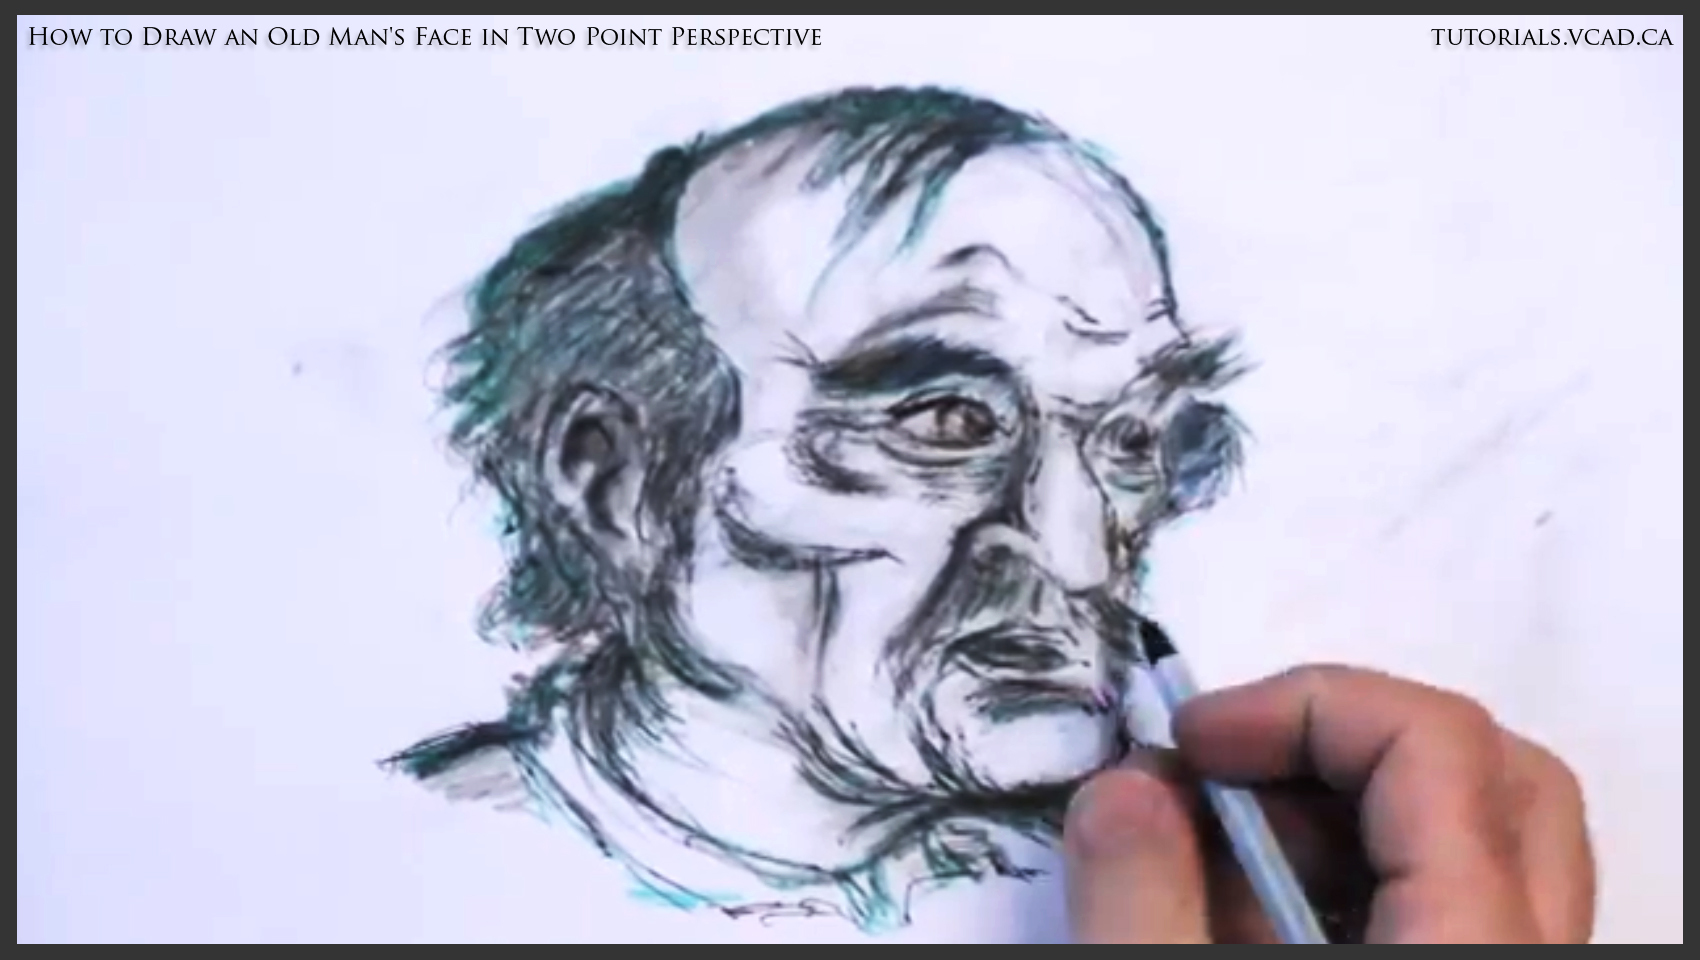 1700x960 How To Draw An Old Man's Face In Two Point Perspective